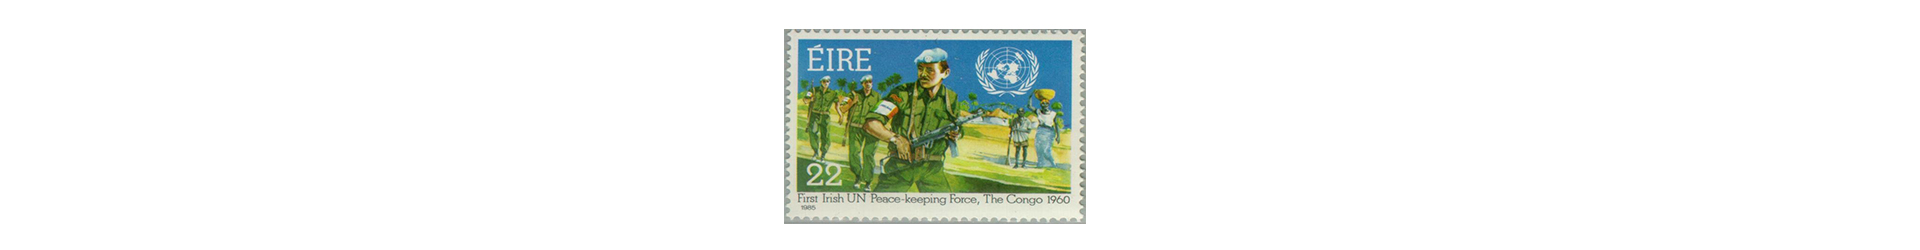 Ireland in the Service of the Future – A Film on The Congo